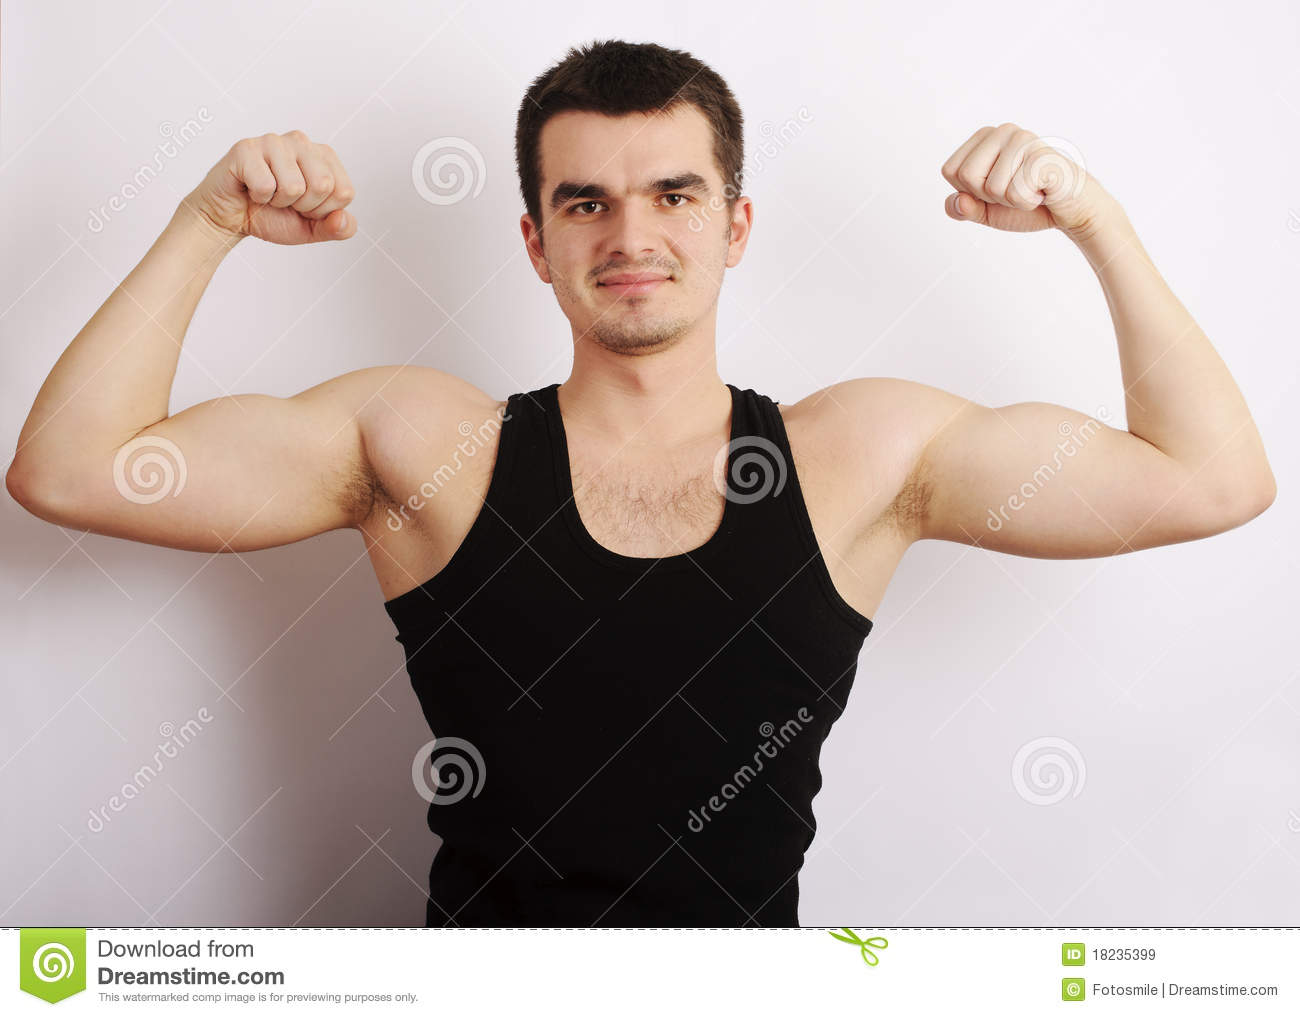 Royalty Free Stock Images: Young man flexing his muscles